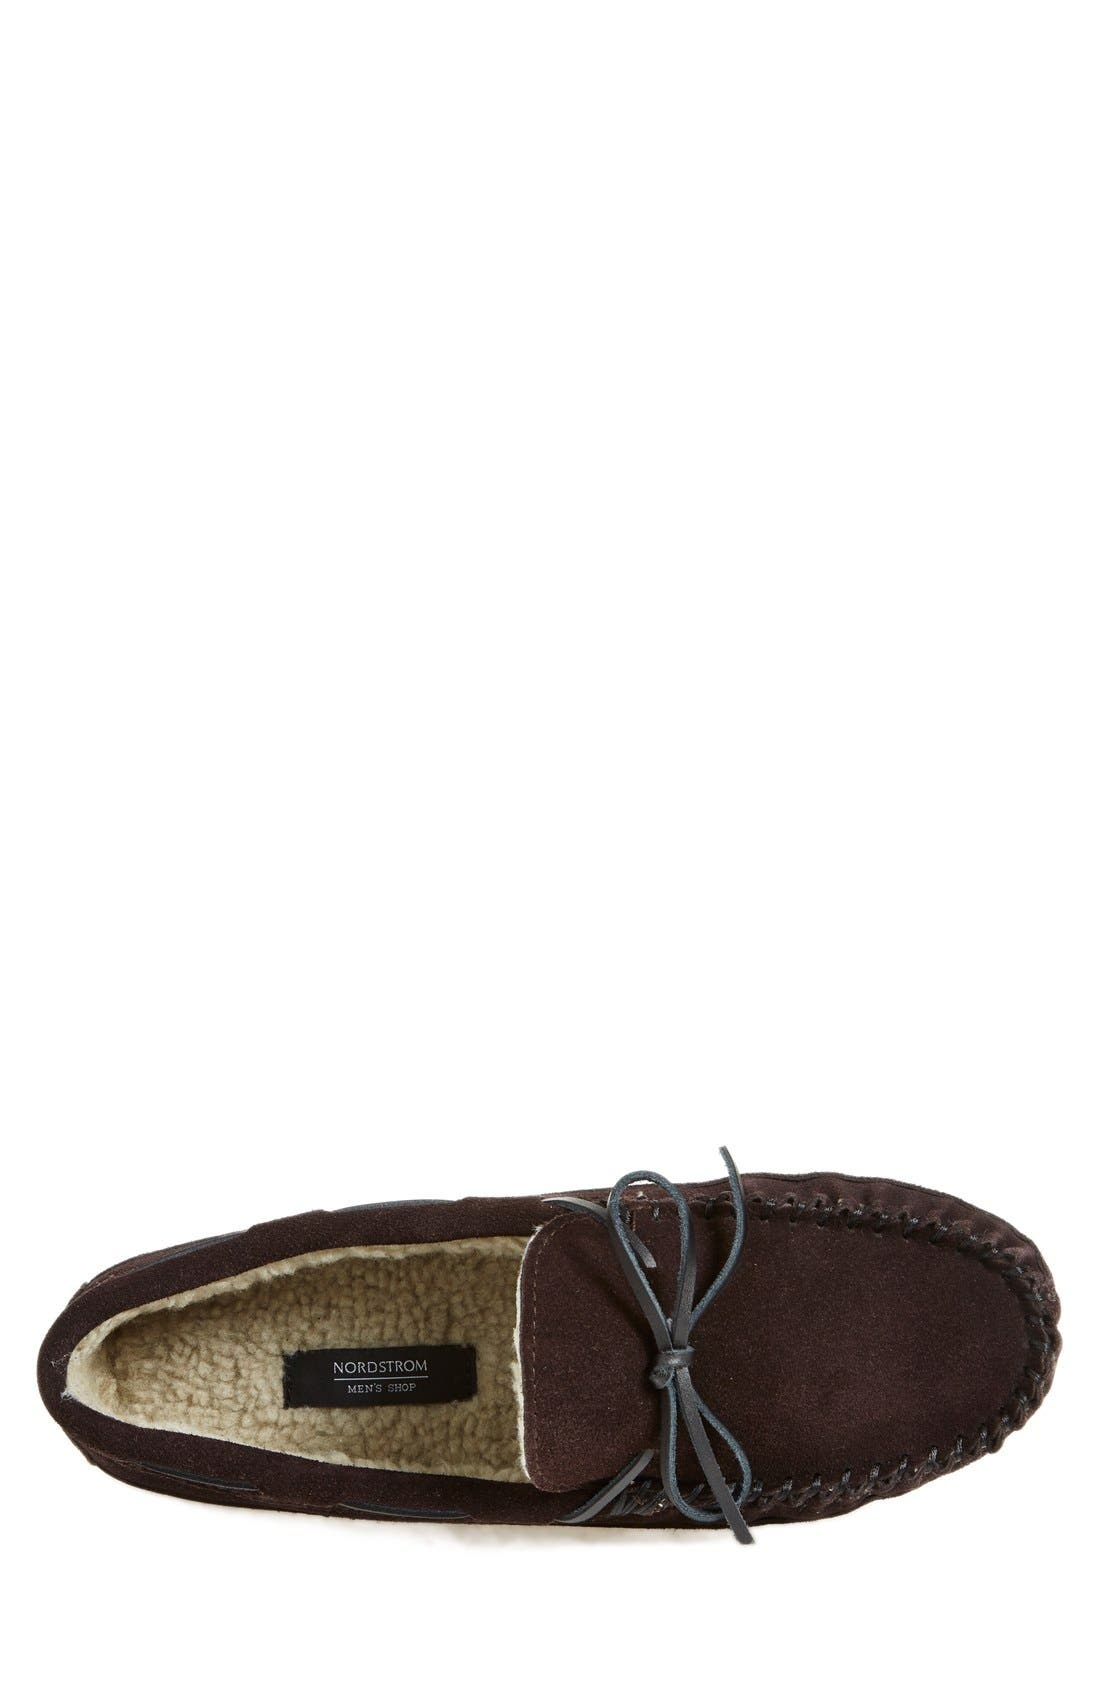 'Potomac' Moccasin Slipper,                             Alternate thumbnail 3, color,                             220